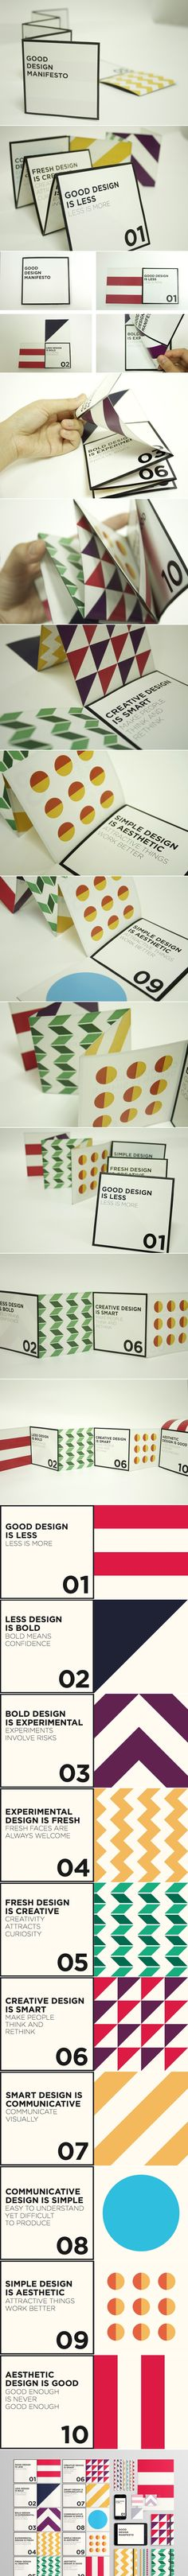 Carte de Visite - Good Design Manifesto